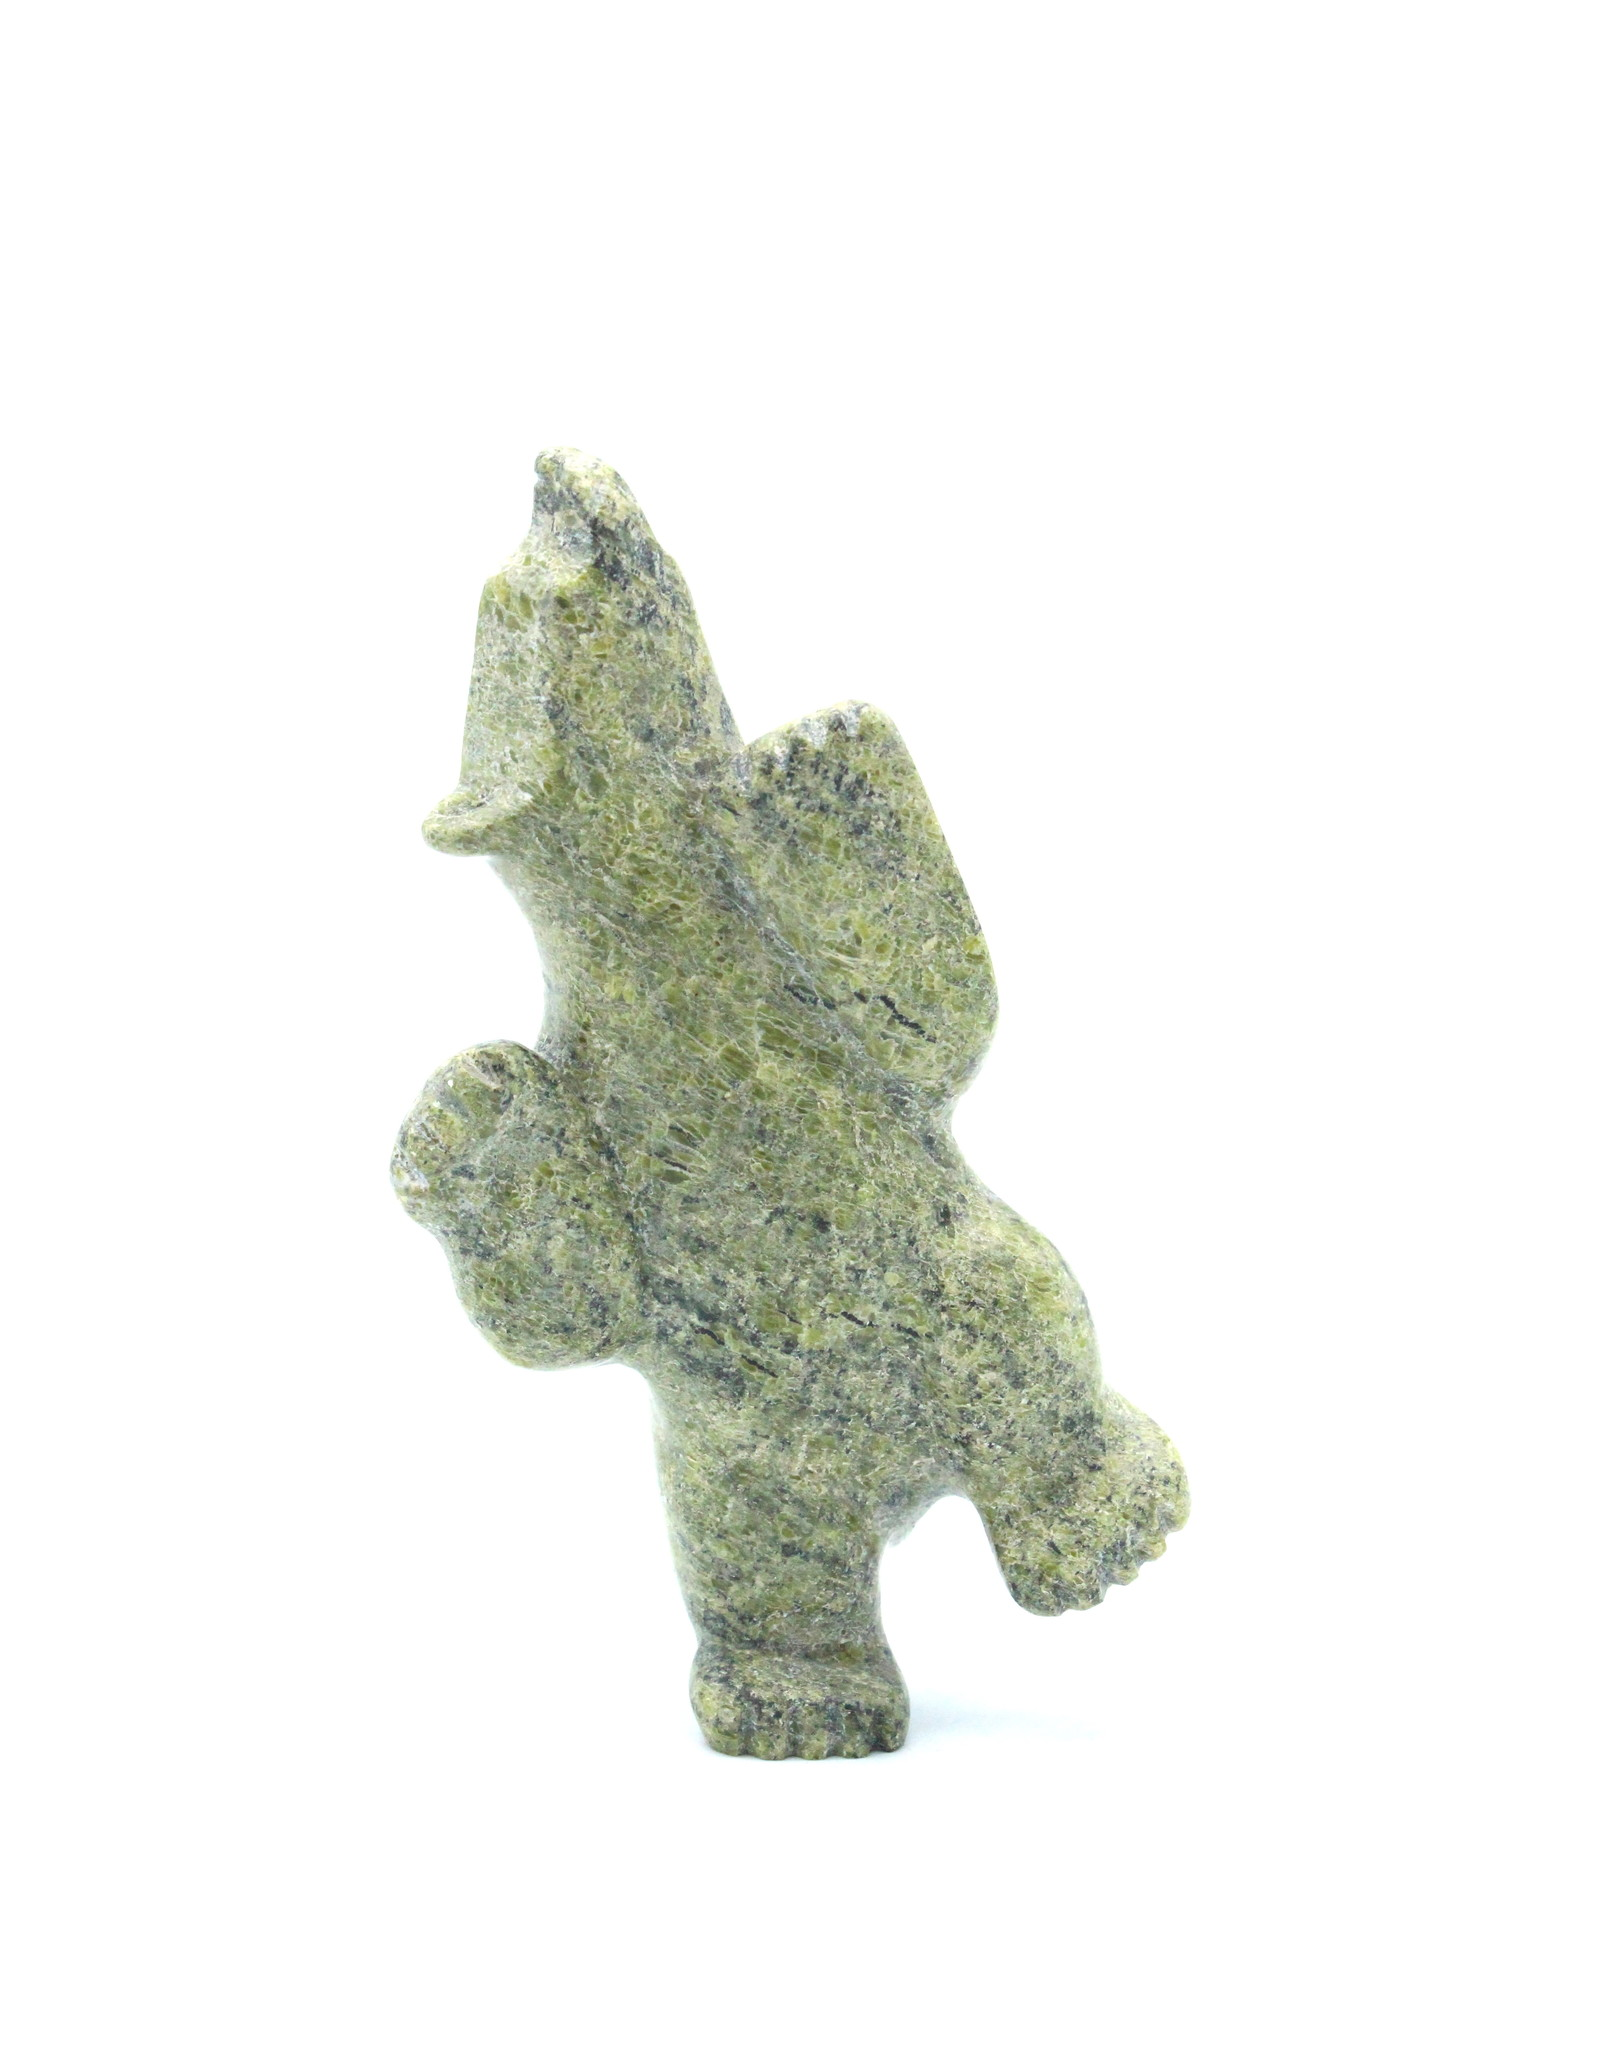 8837L Dancing Bear by Johnny Papigatook